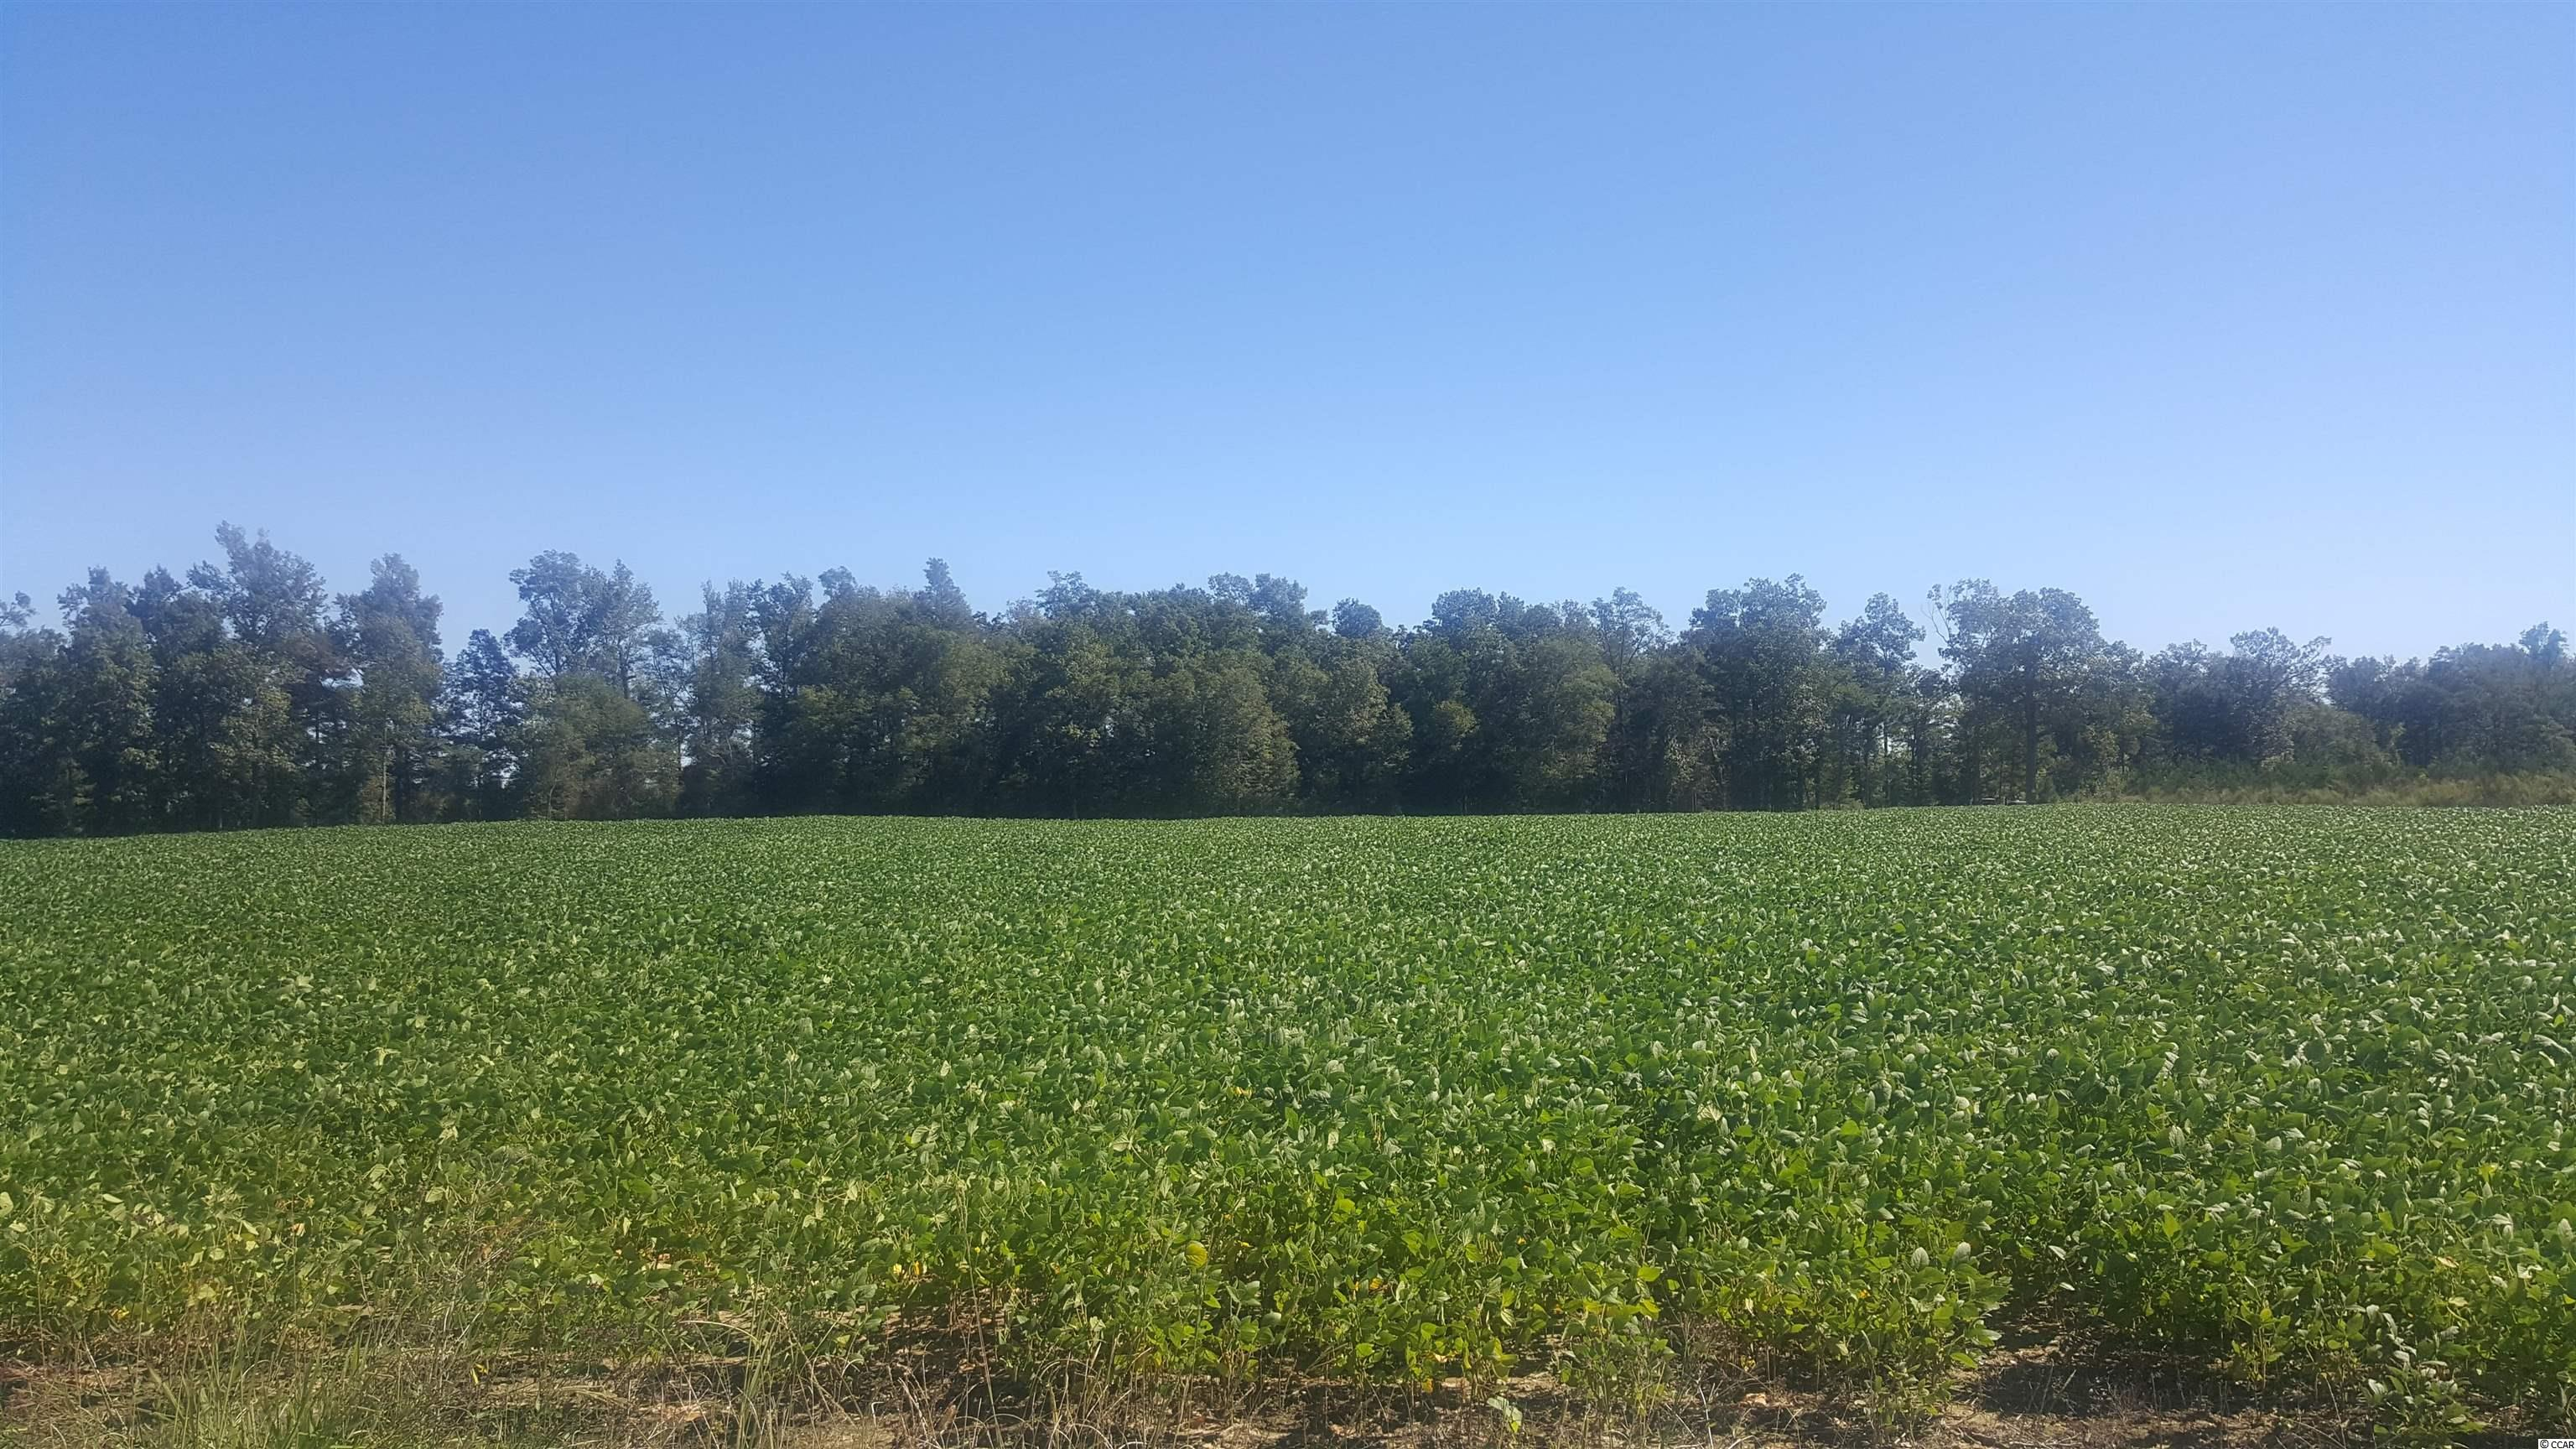 This is a very well maintained farm with over 138 acres to enjoy the wildlife.  The trails are well maintained so you can walk or ride four-wheelers to fine the perfect spot for the deer hunter in your family.